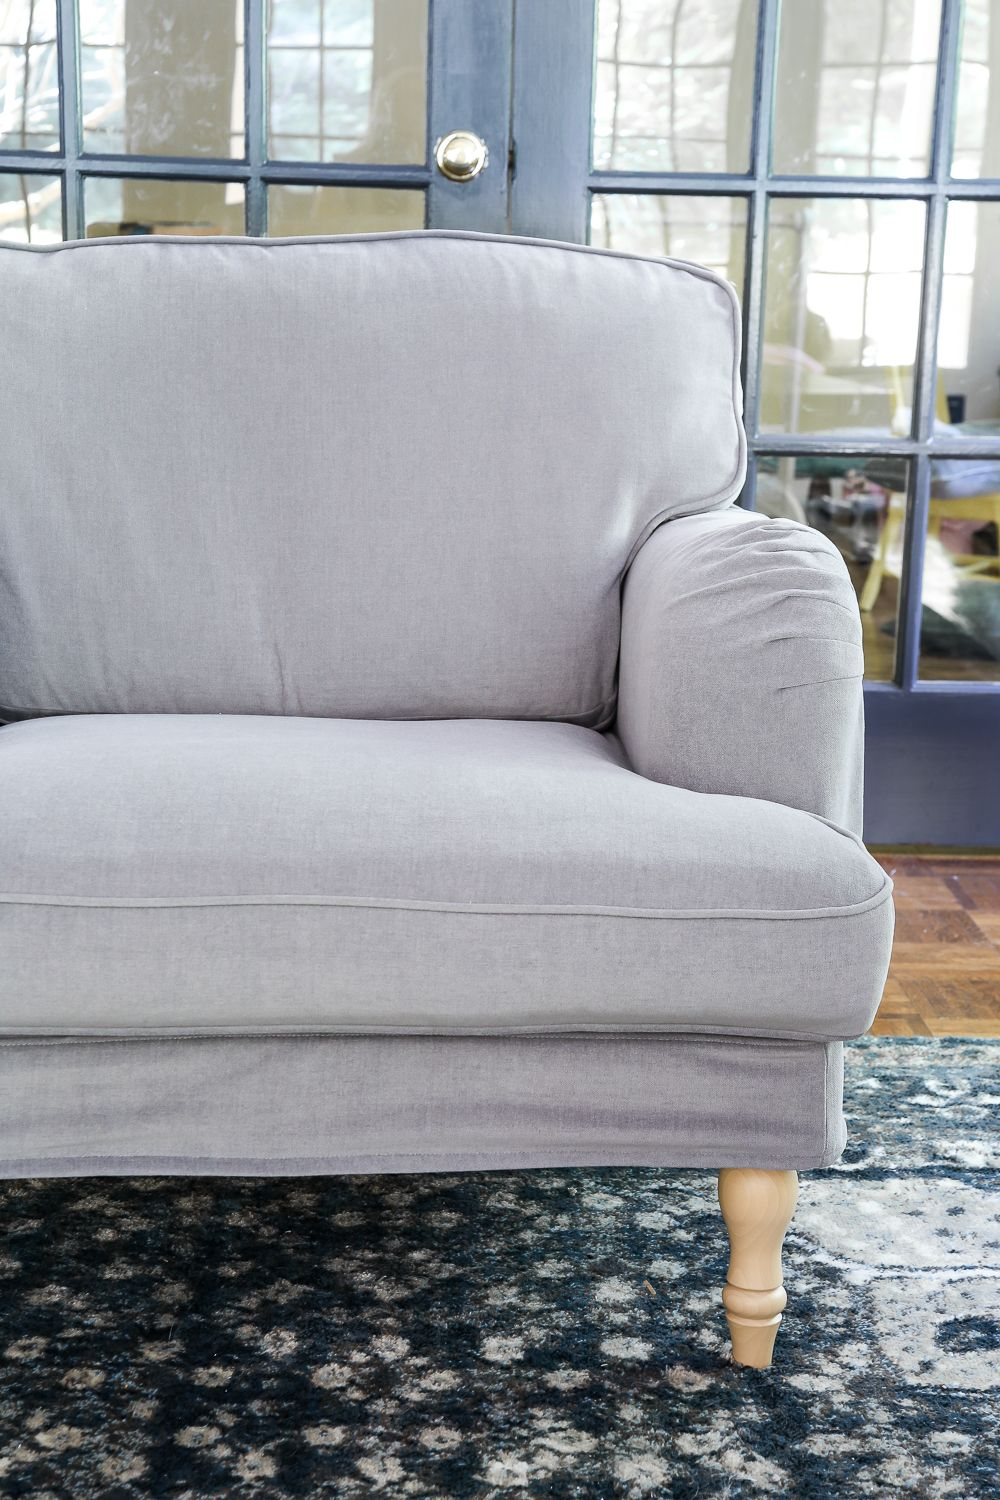 IKEA's New Sofa and Chairs and How to Keep Them Clean